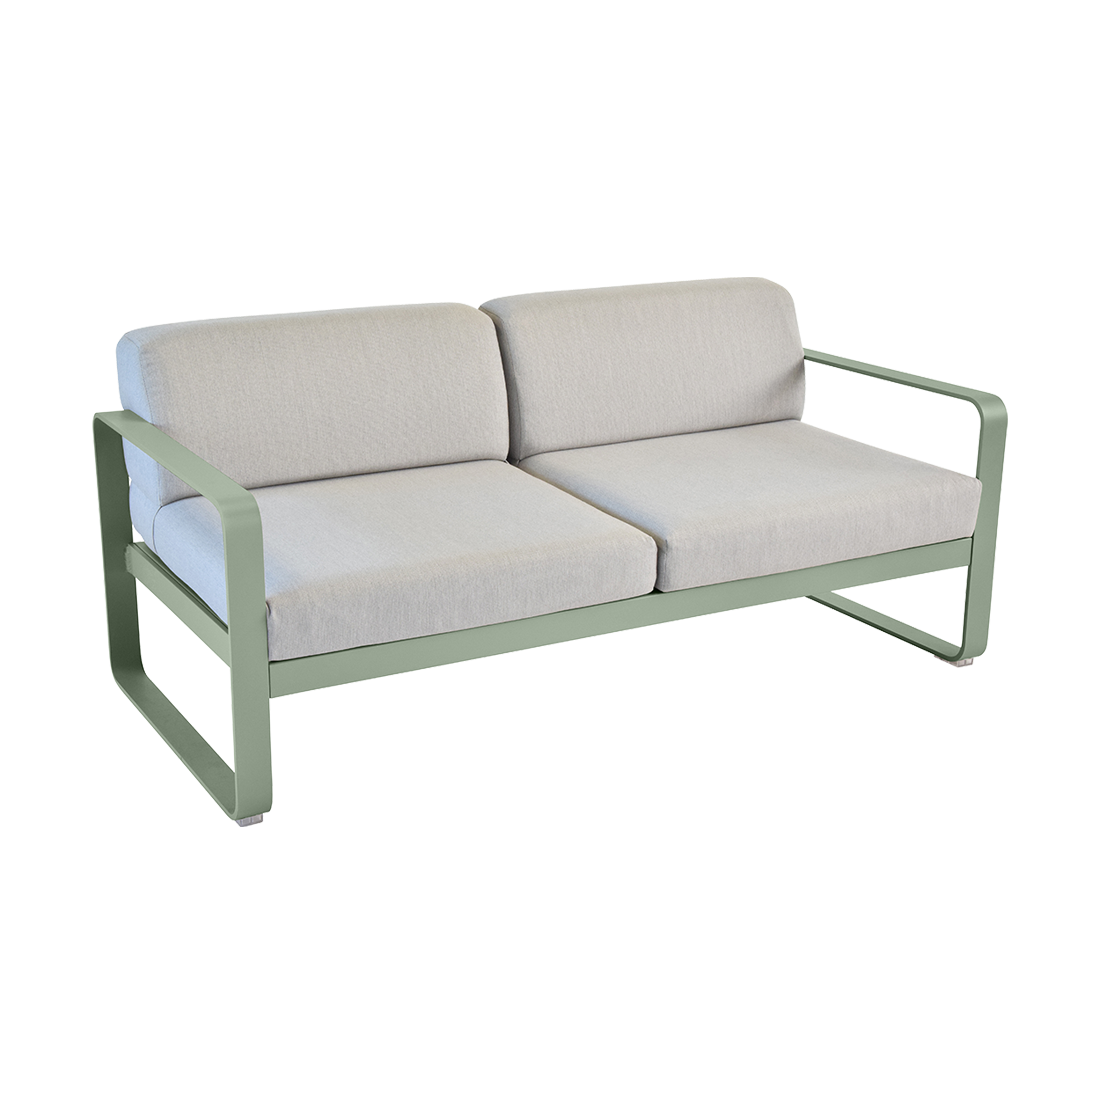 FERMOB Bellevie 2-Seater Outdoor Sofa with Grey Cushions